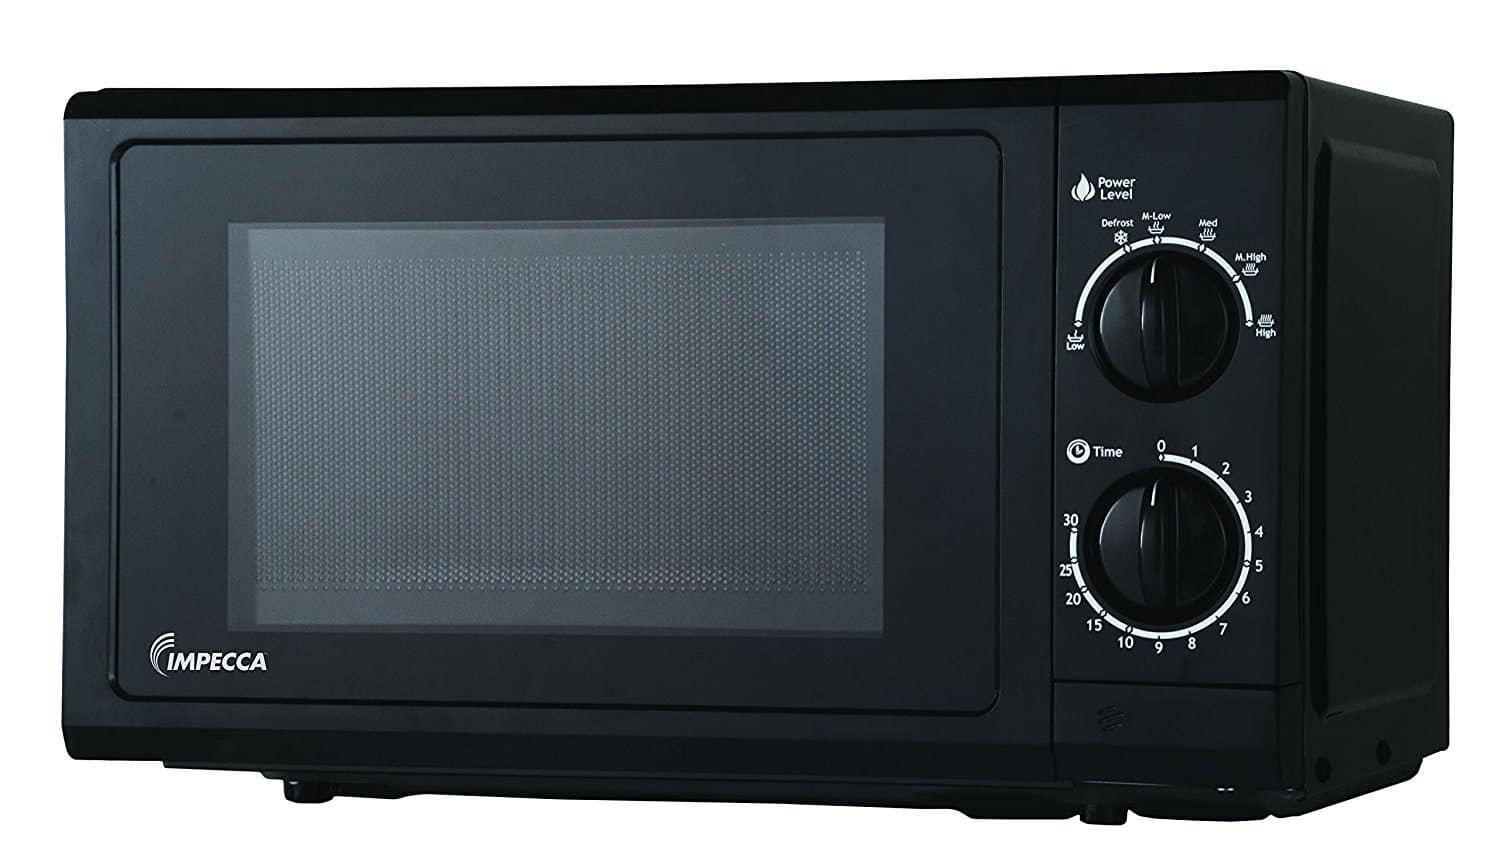 9 Best Microwaves For Senior Citizens 2018 Updated Guide